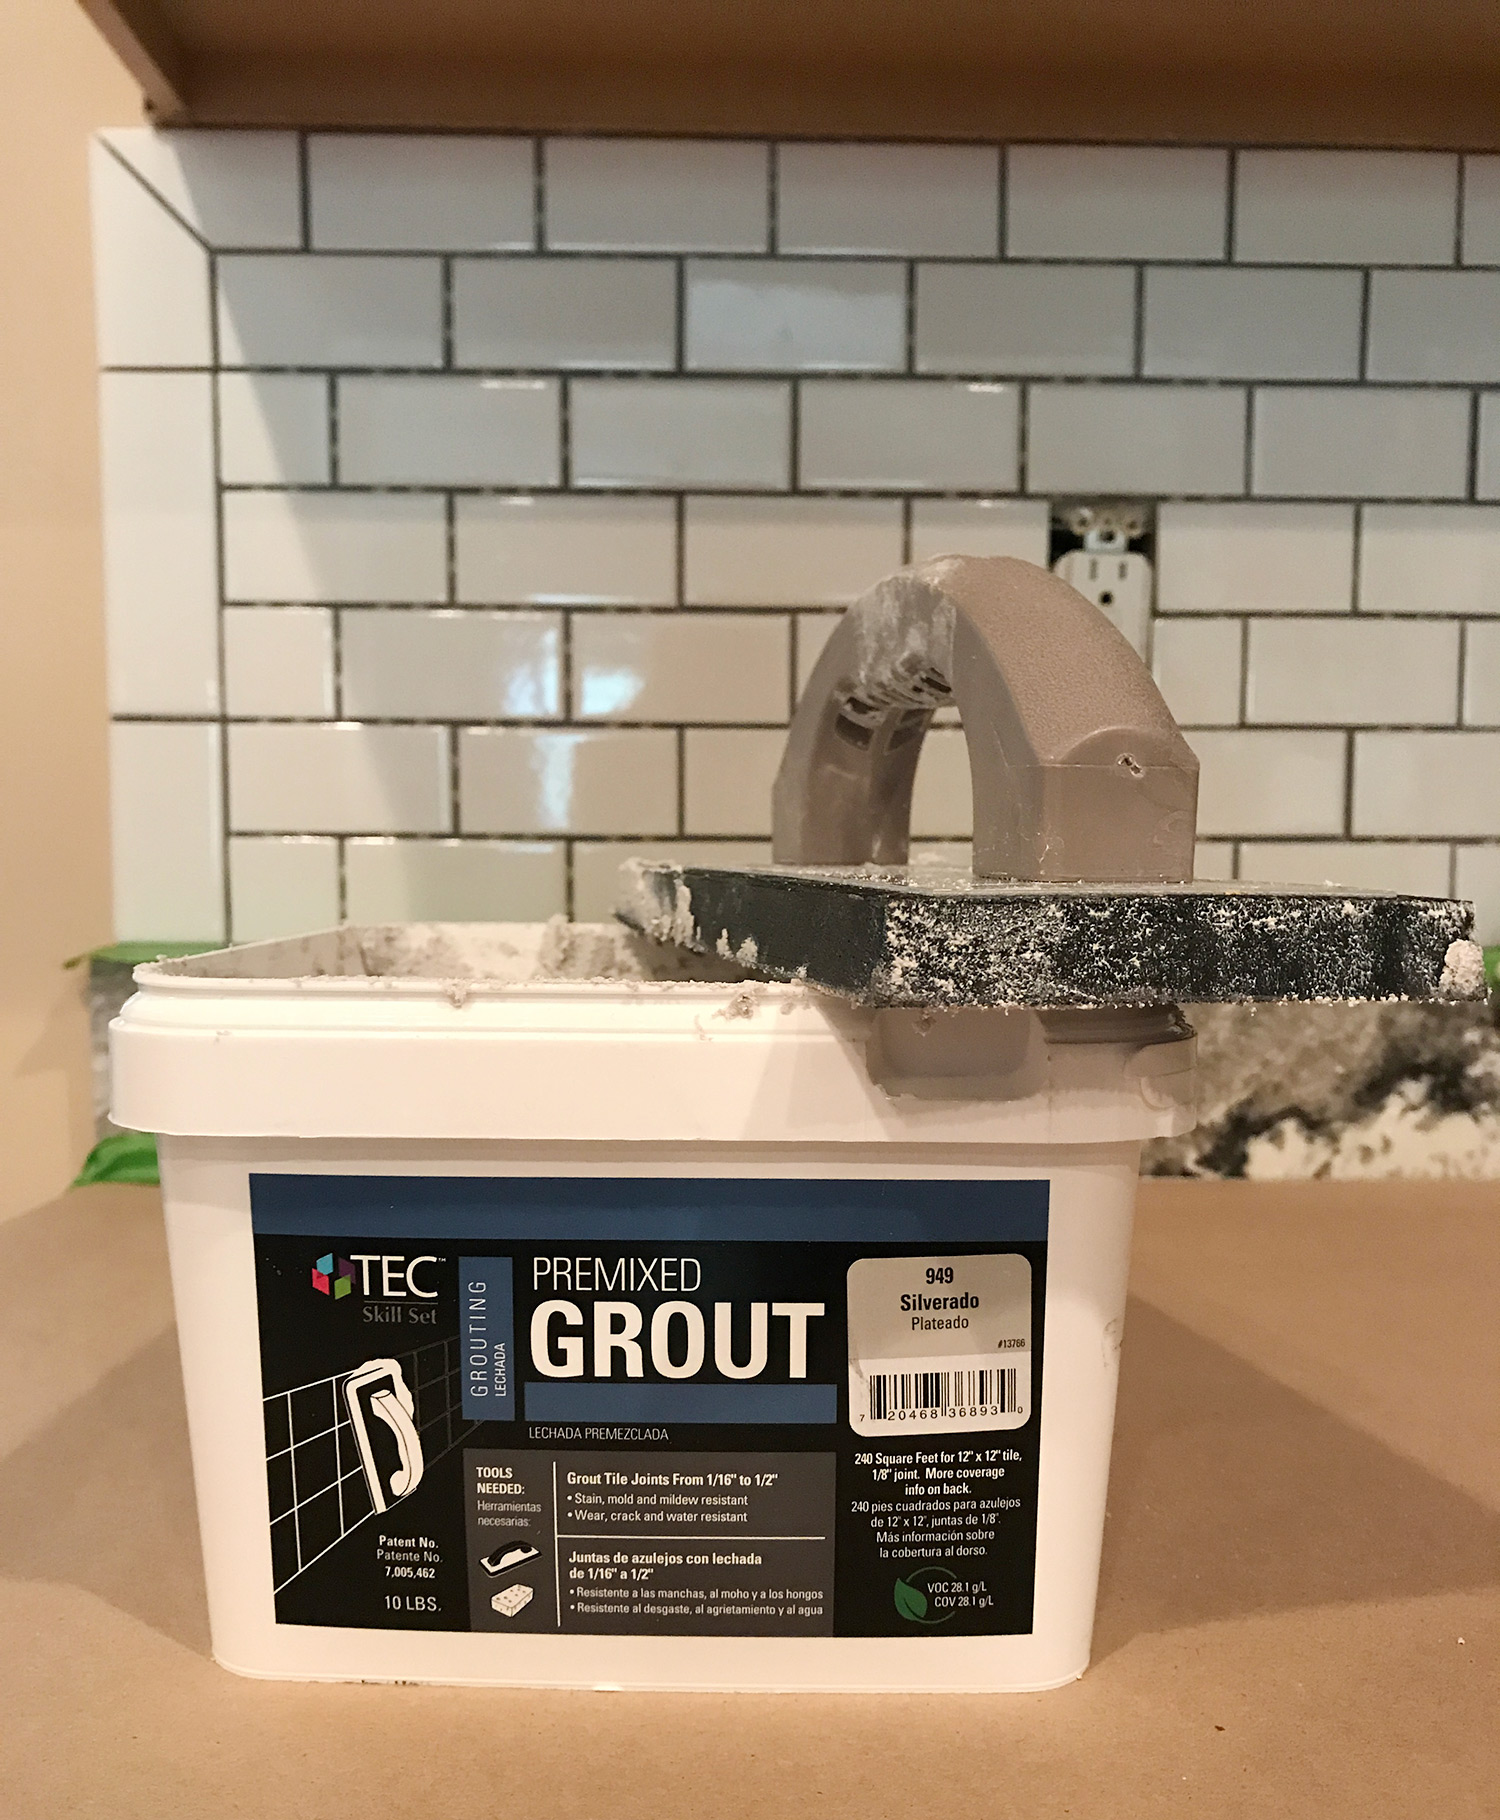 How-to-add-a-backsplash-cheap-and-so-easy-Has-all-the-pics-and-info-and-even-a-video-wallpaper-wp4005371